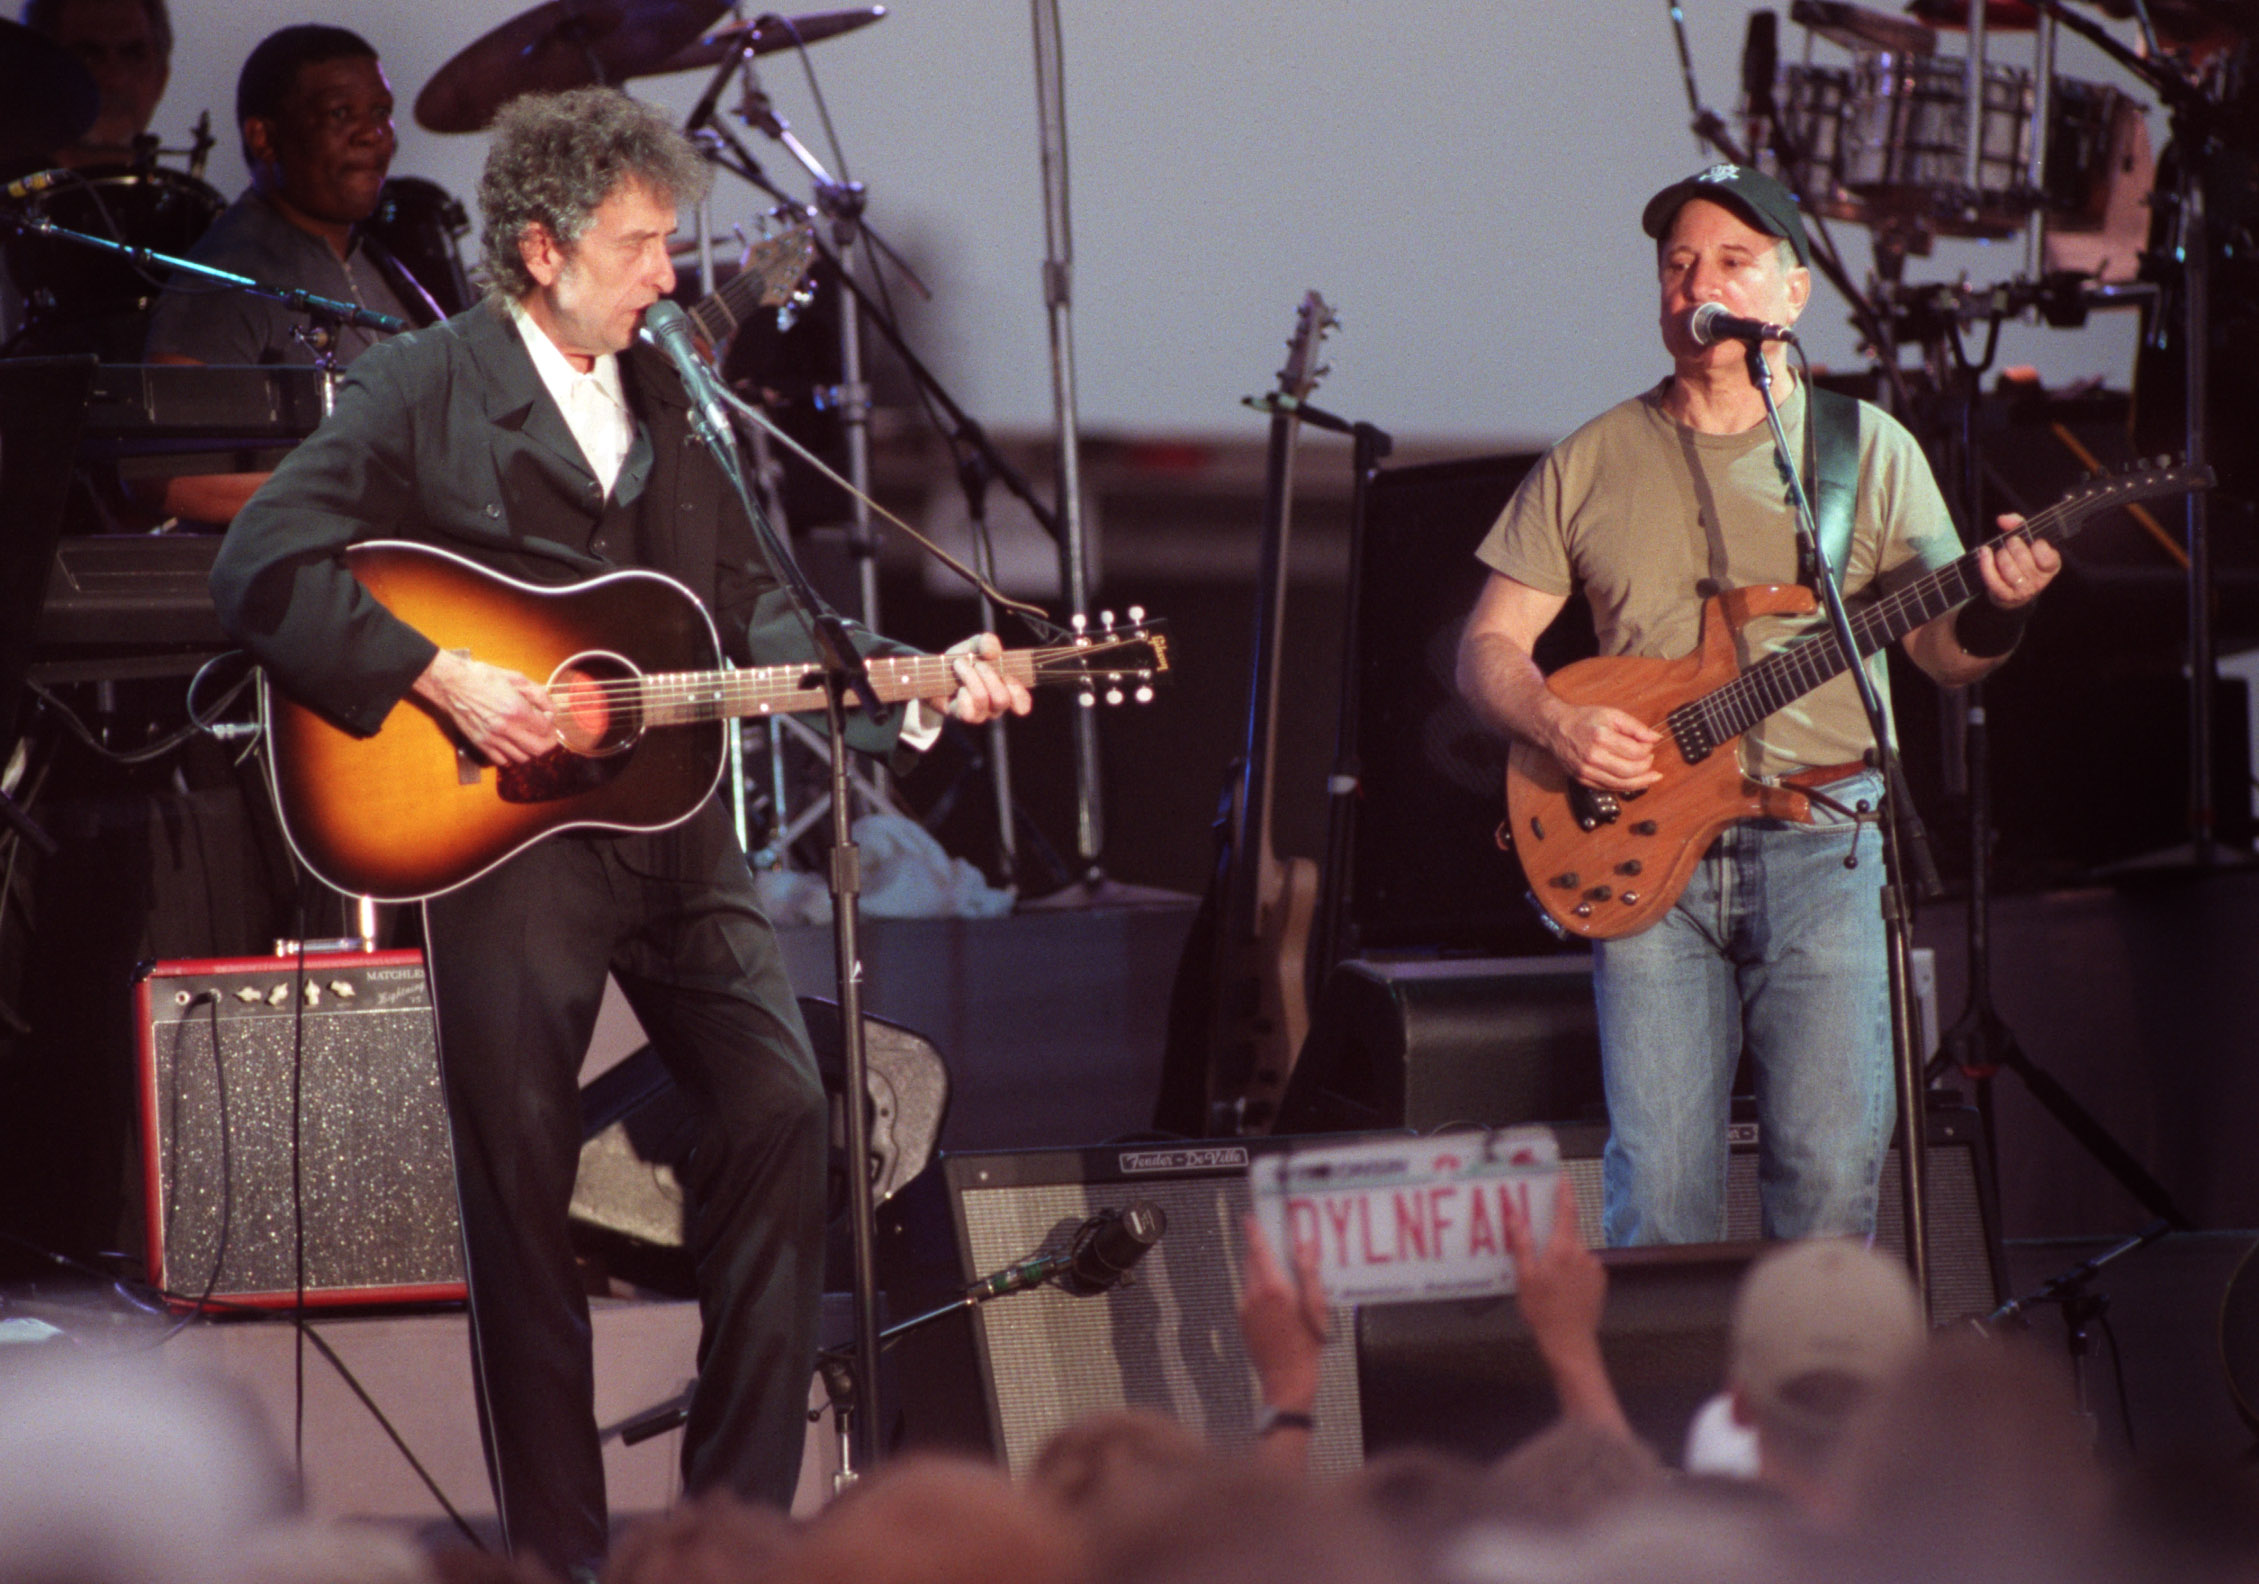 Flashback: Bob Dylan and Paul Simon Duet on 'The Sound of